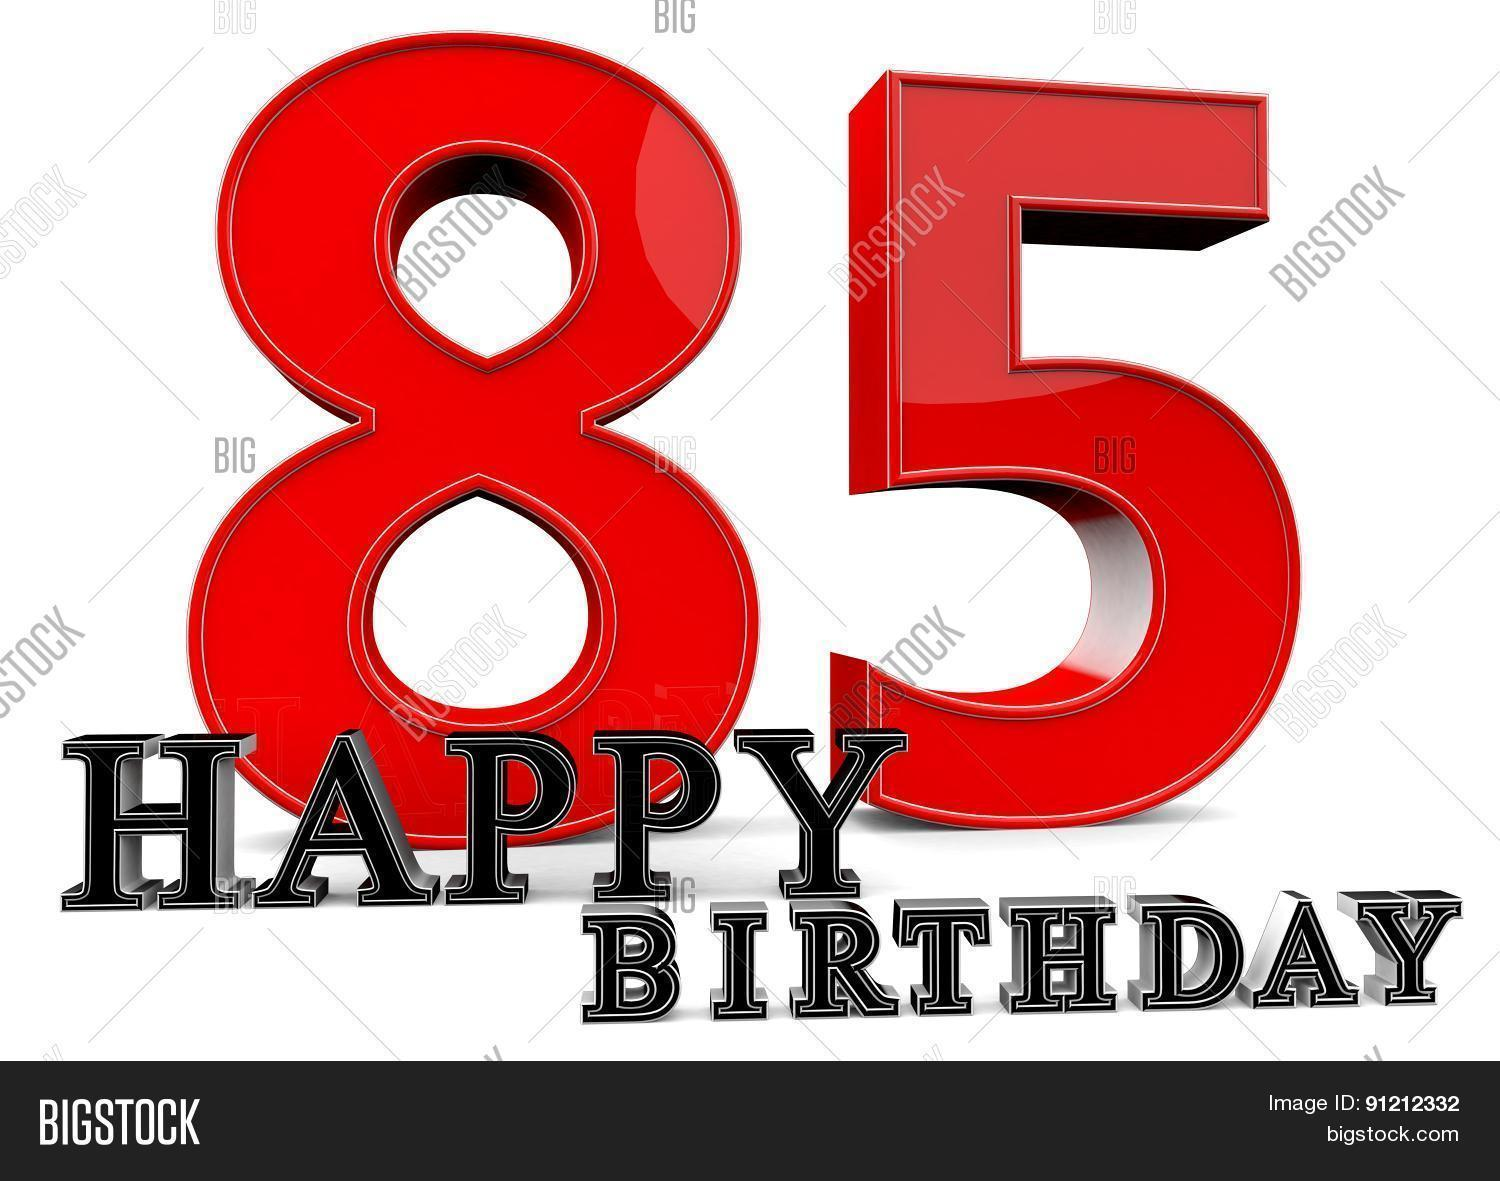 Happy 85Th Birthday Image Photo Free Trial